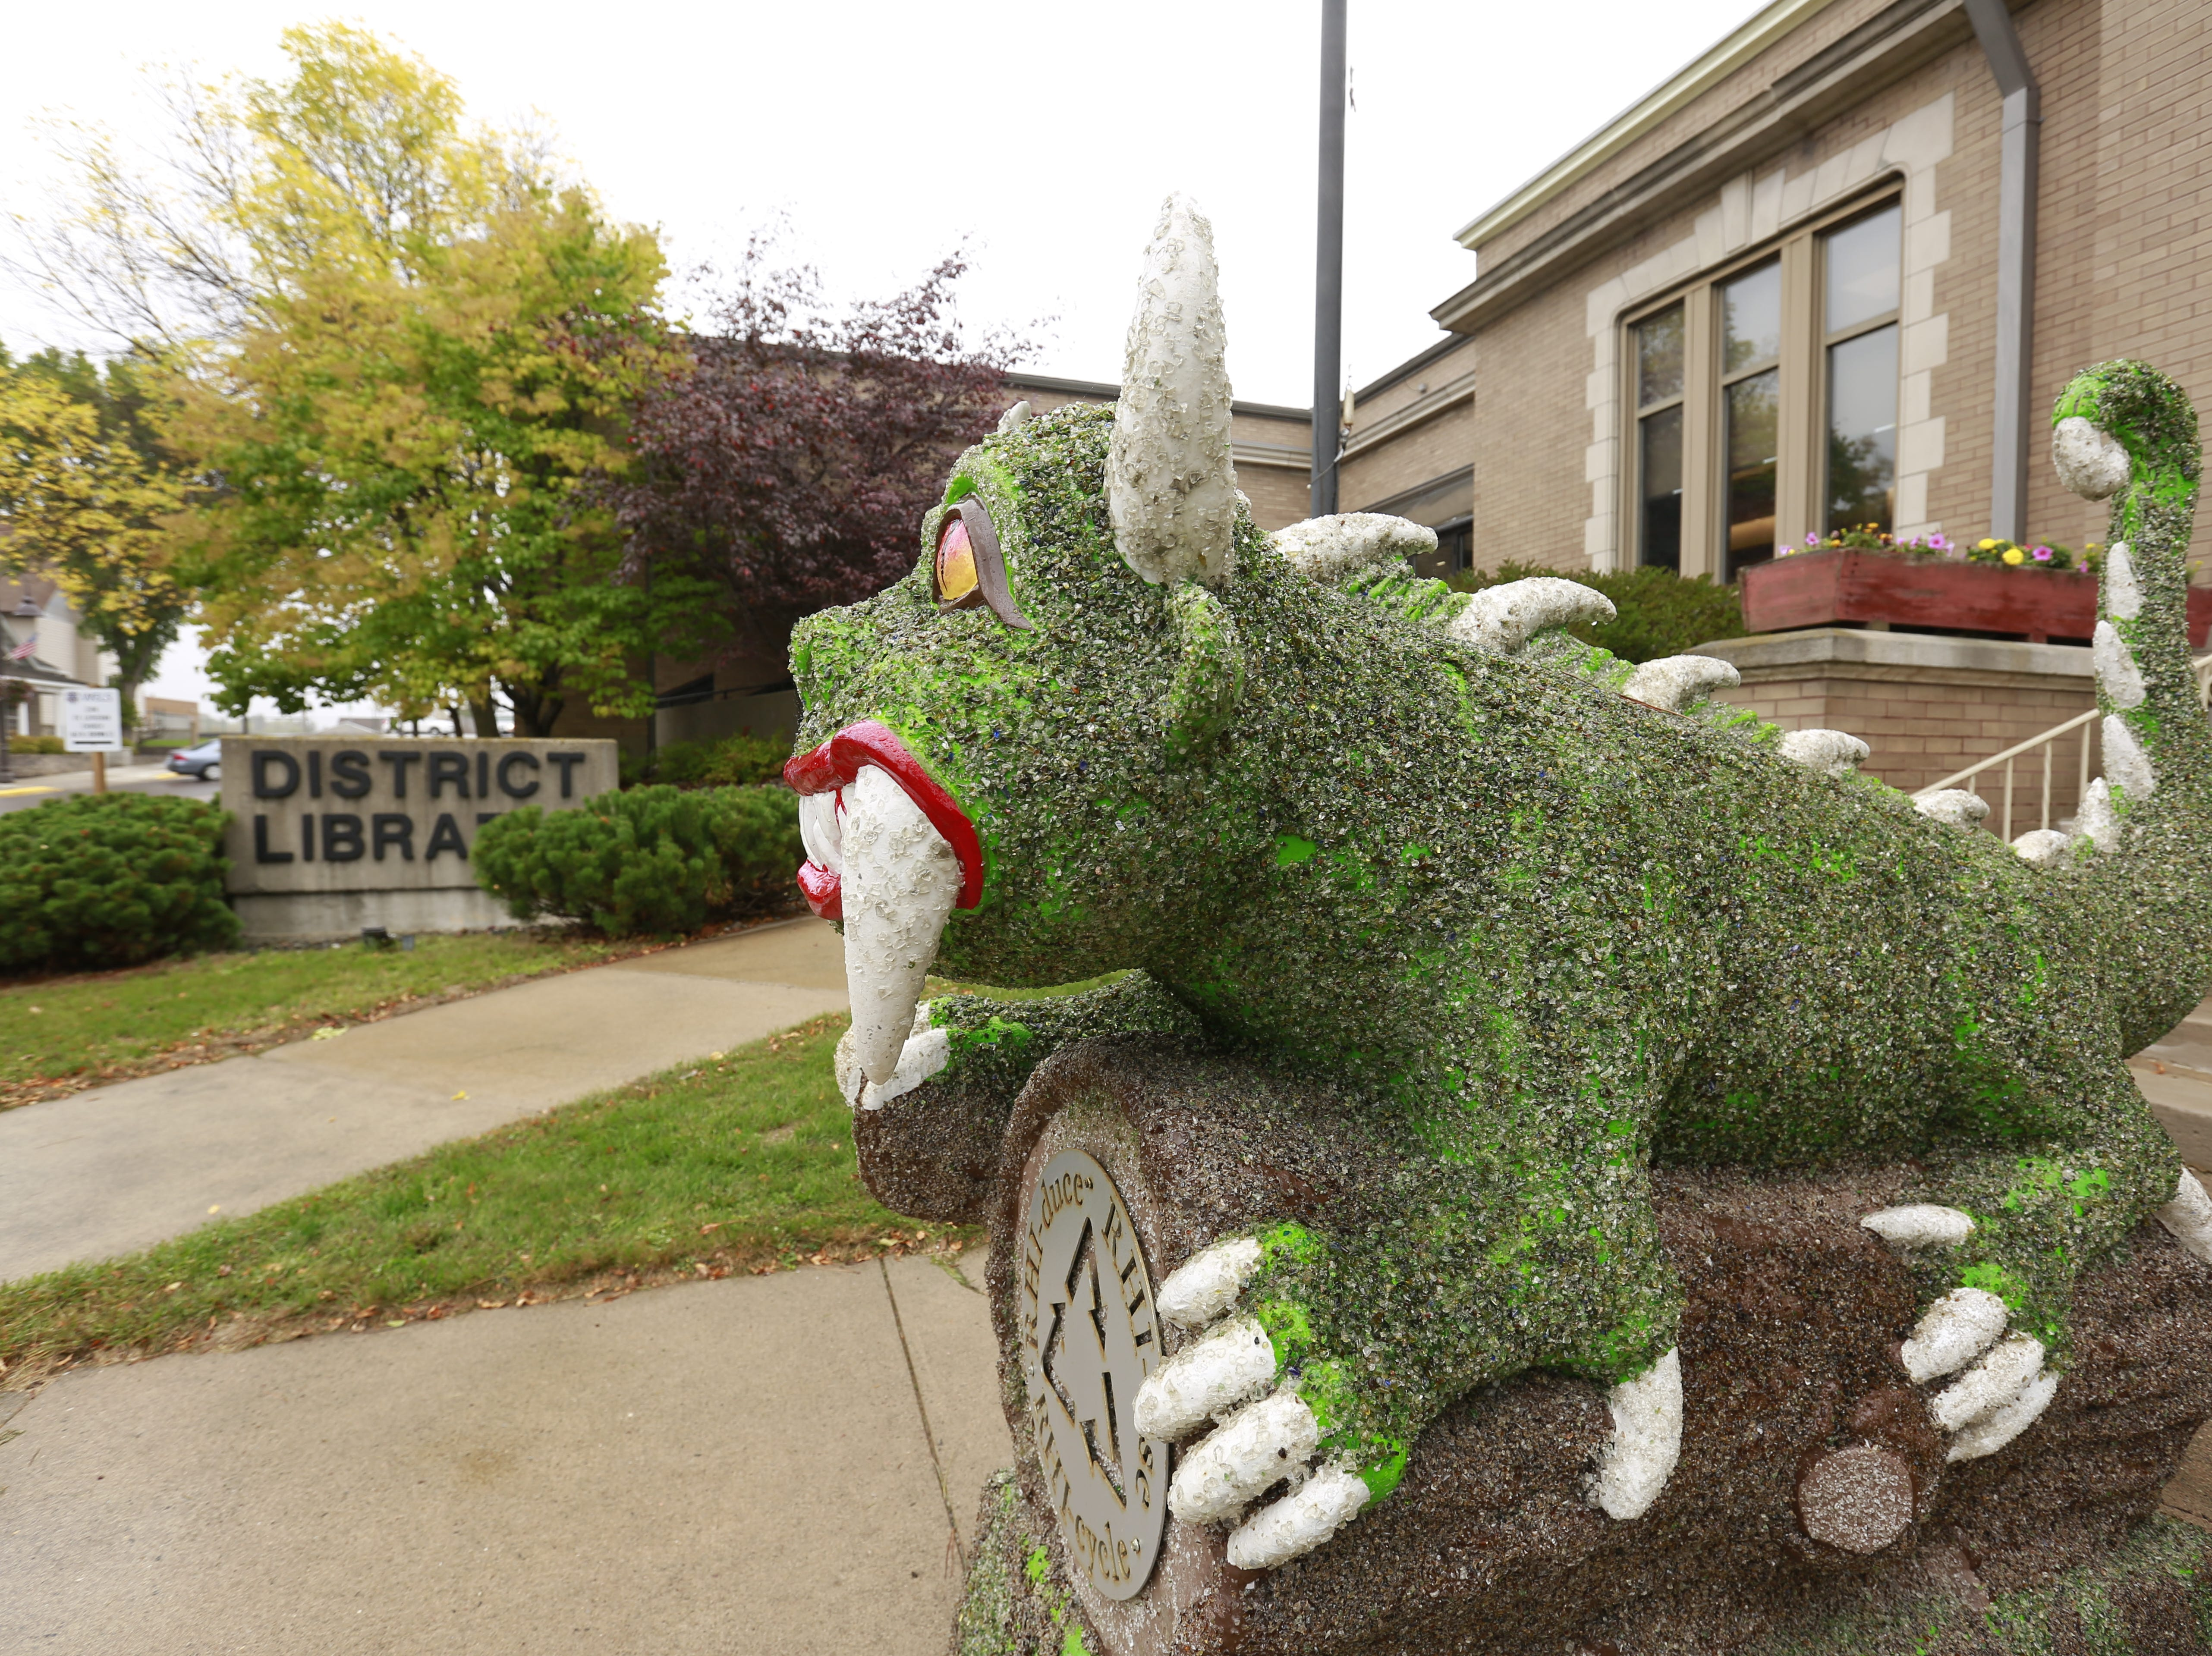 A Hodag sculpture sits on a property of the Rhinelander District Library Tuesday, Sept. 25, 2018, in Rhinelander, Wis.